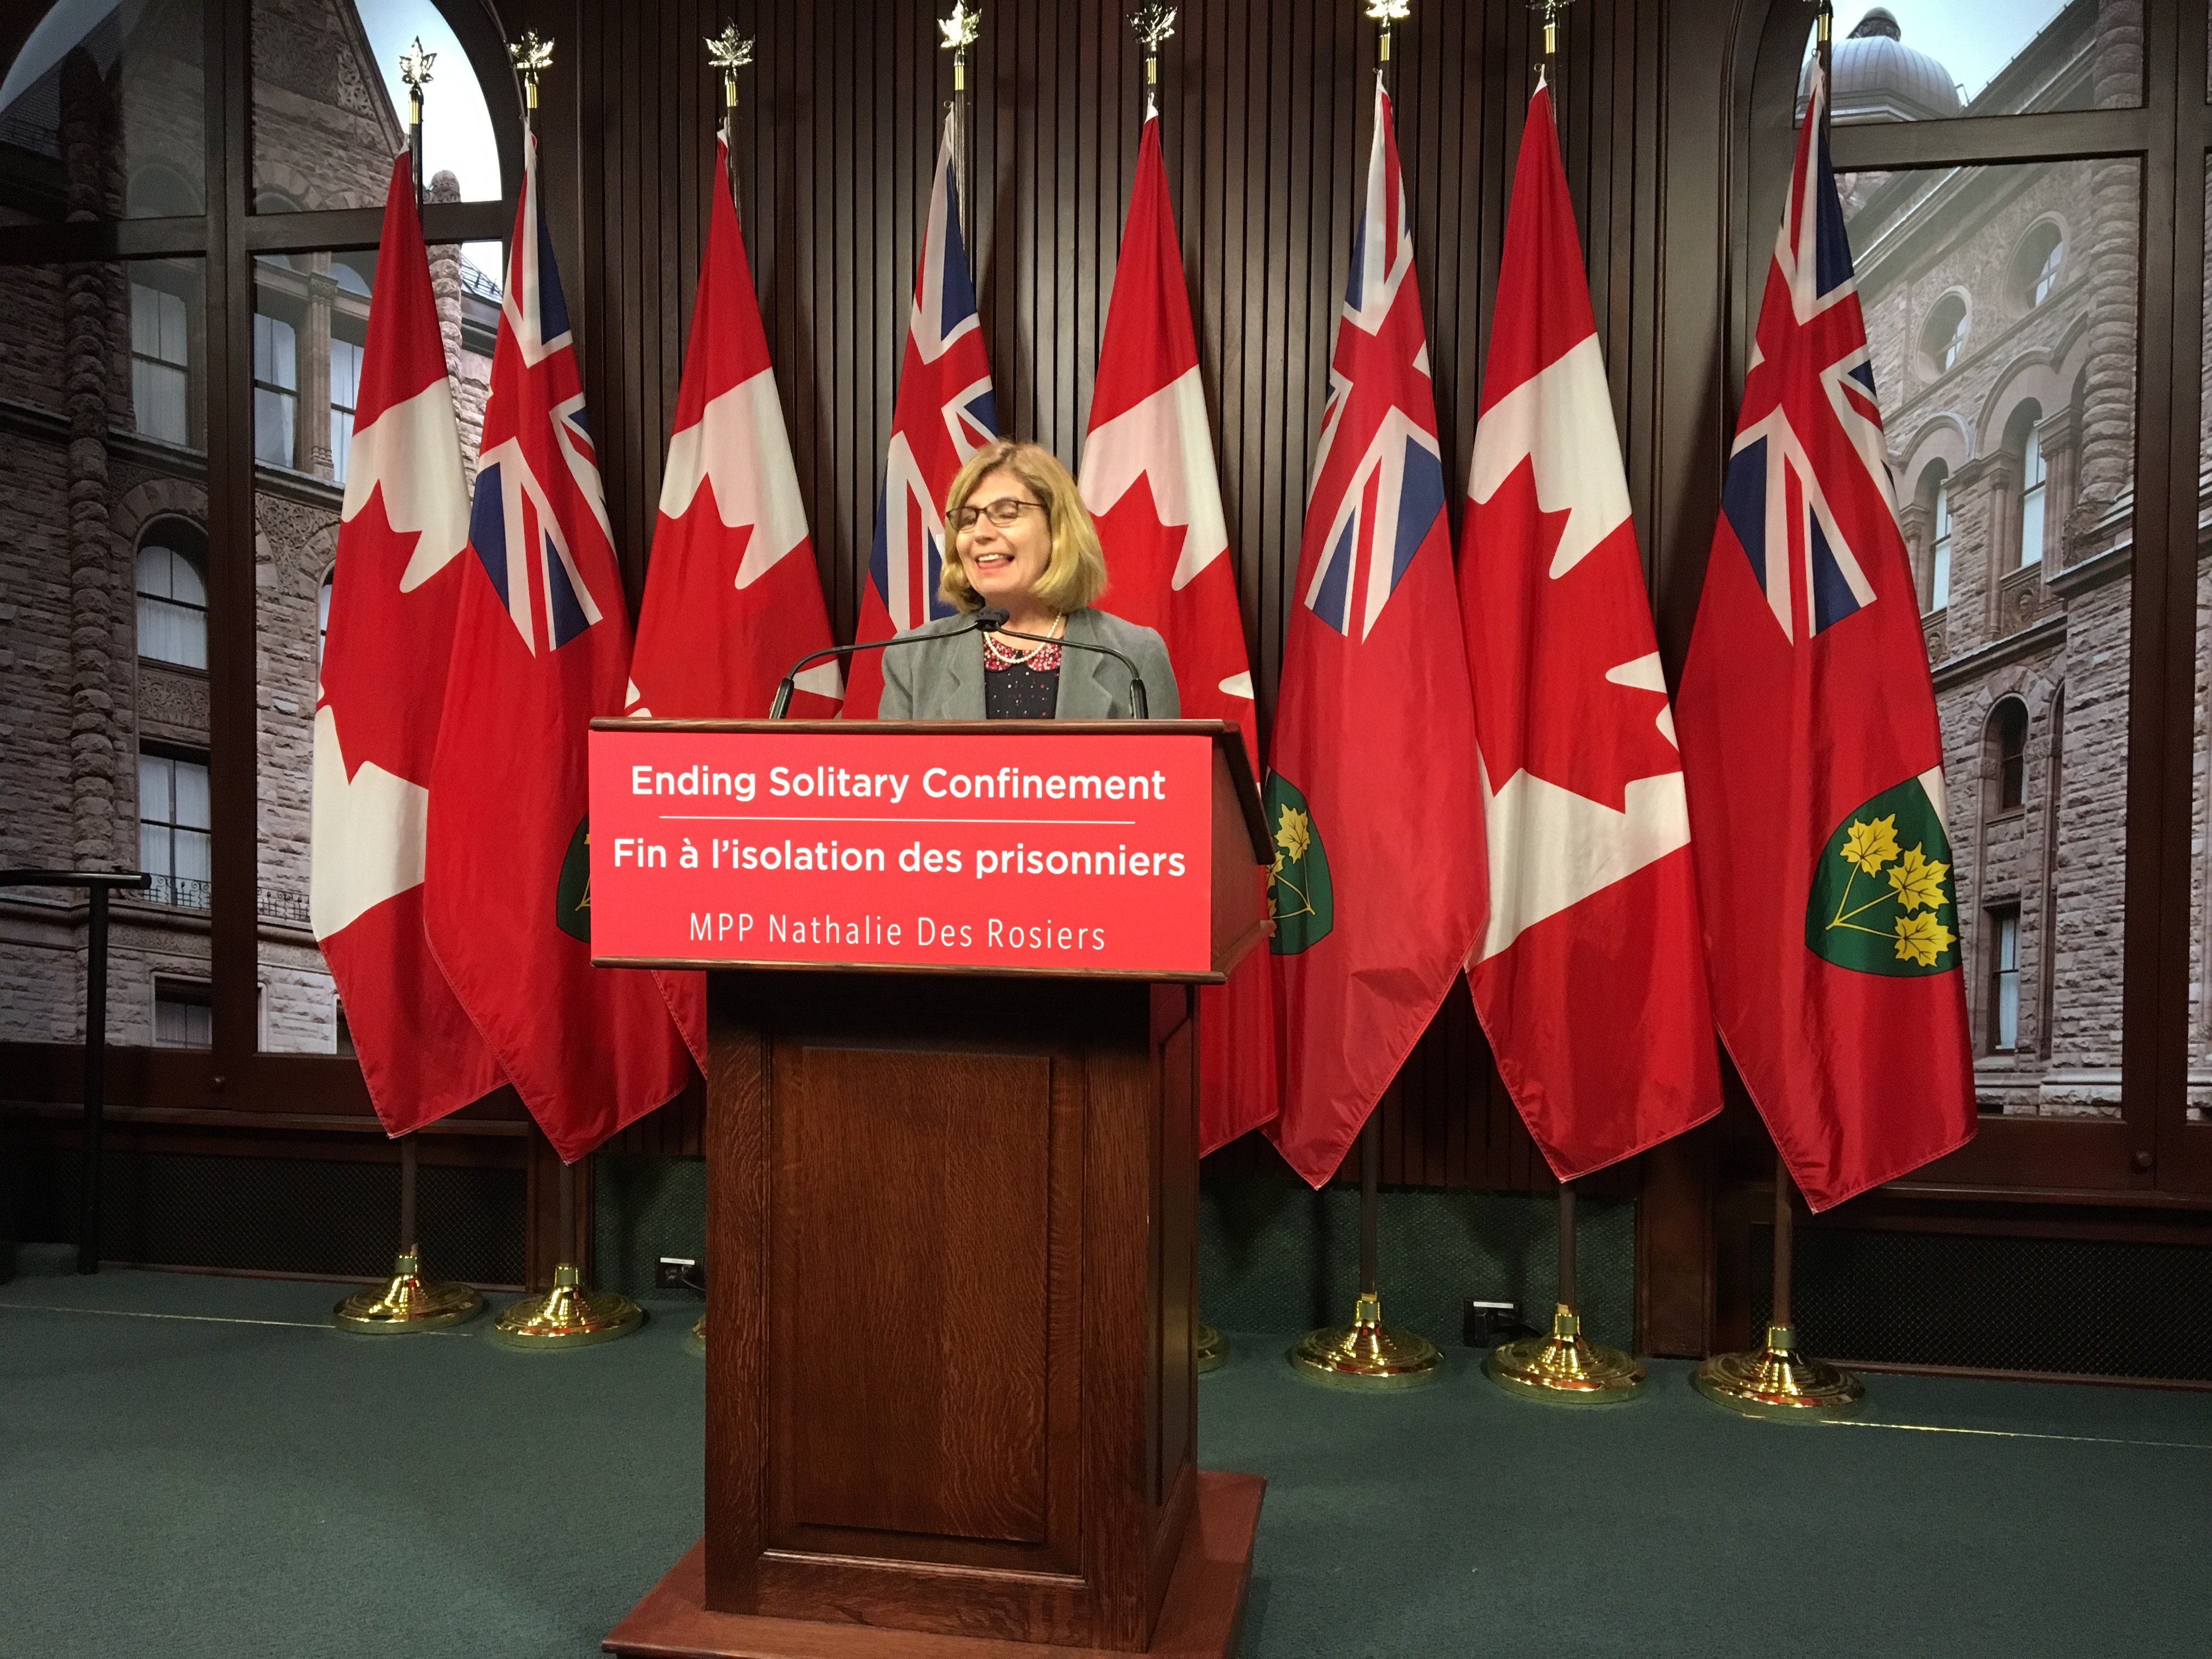 Des Rosiers wants to see five-year phase-out of solitary confinement, but PC government says this is not the solution